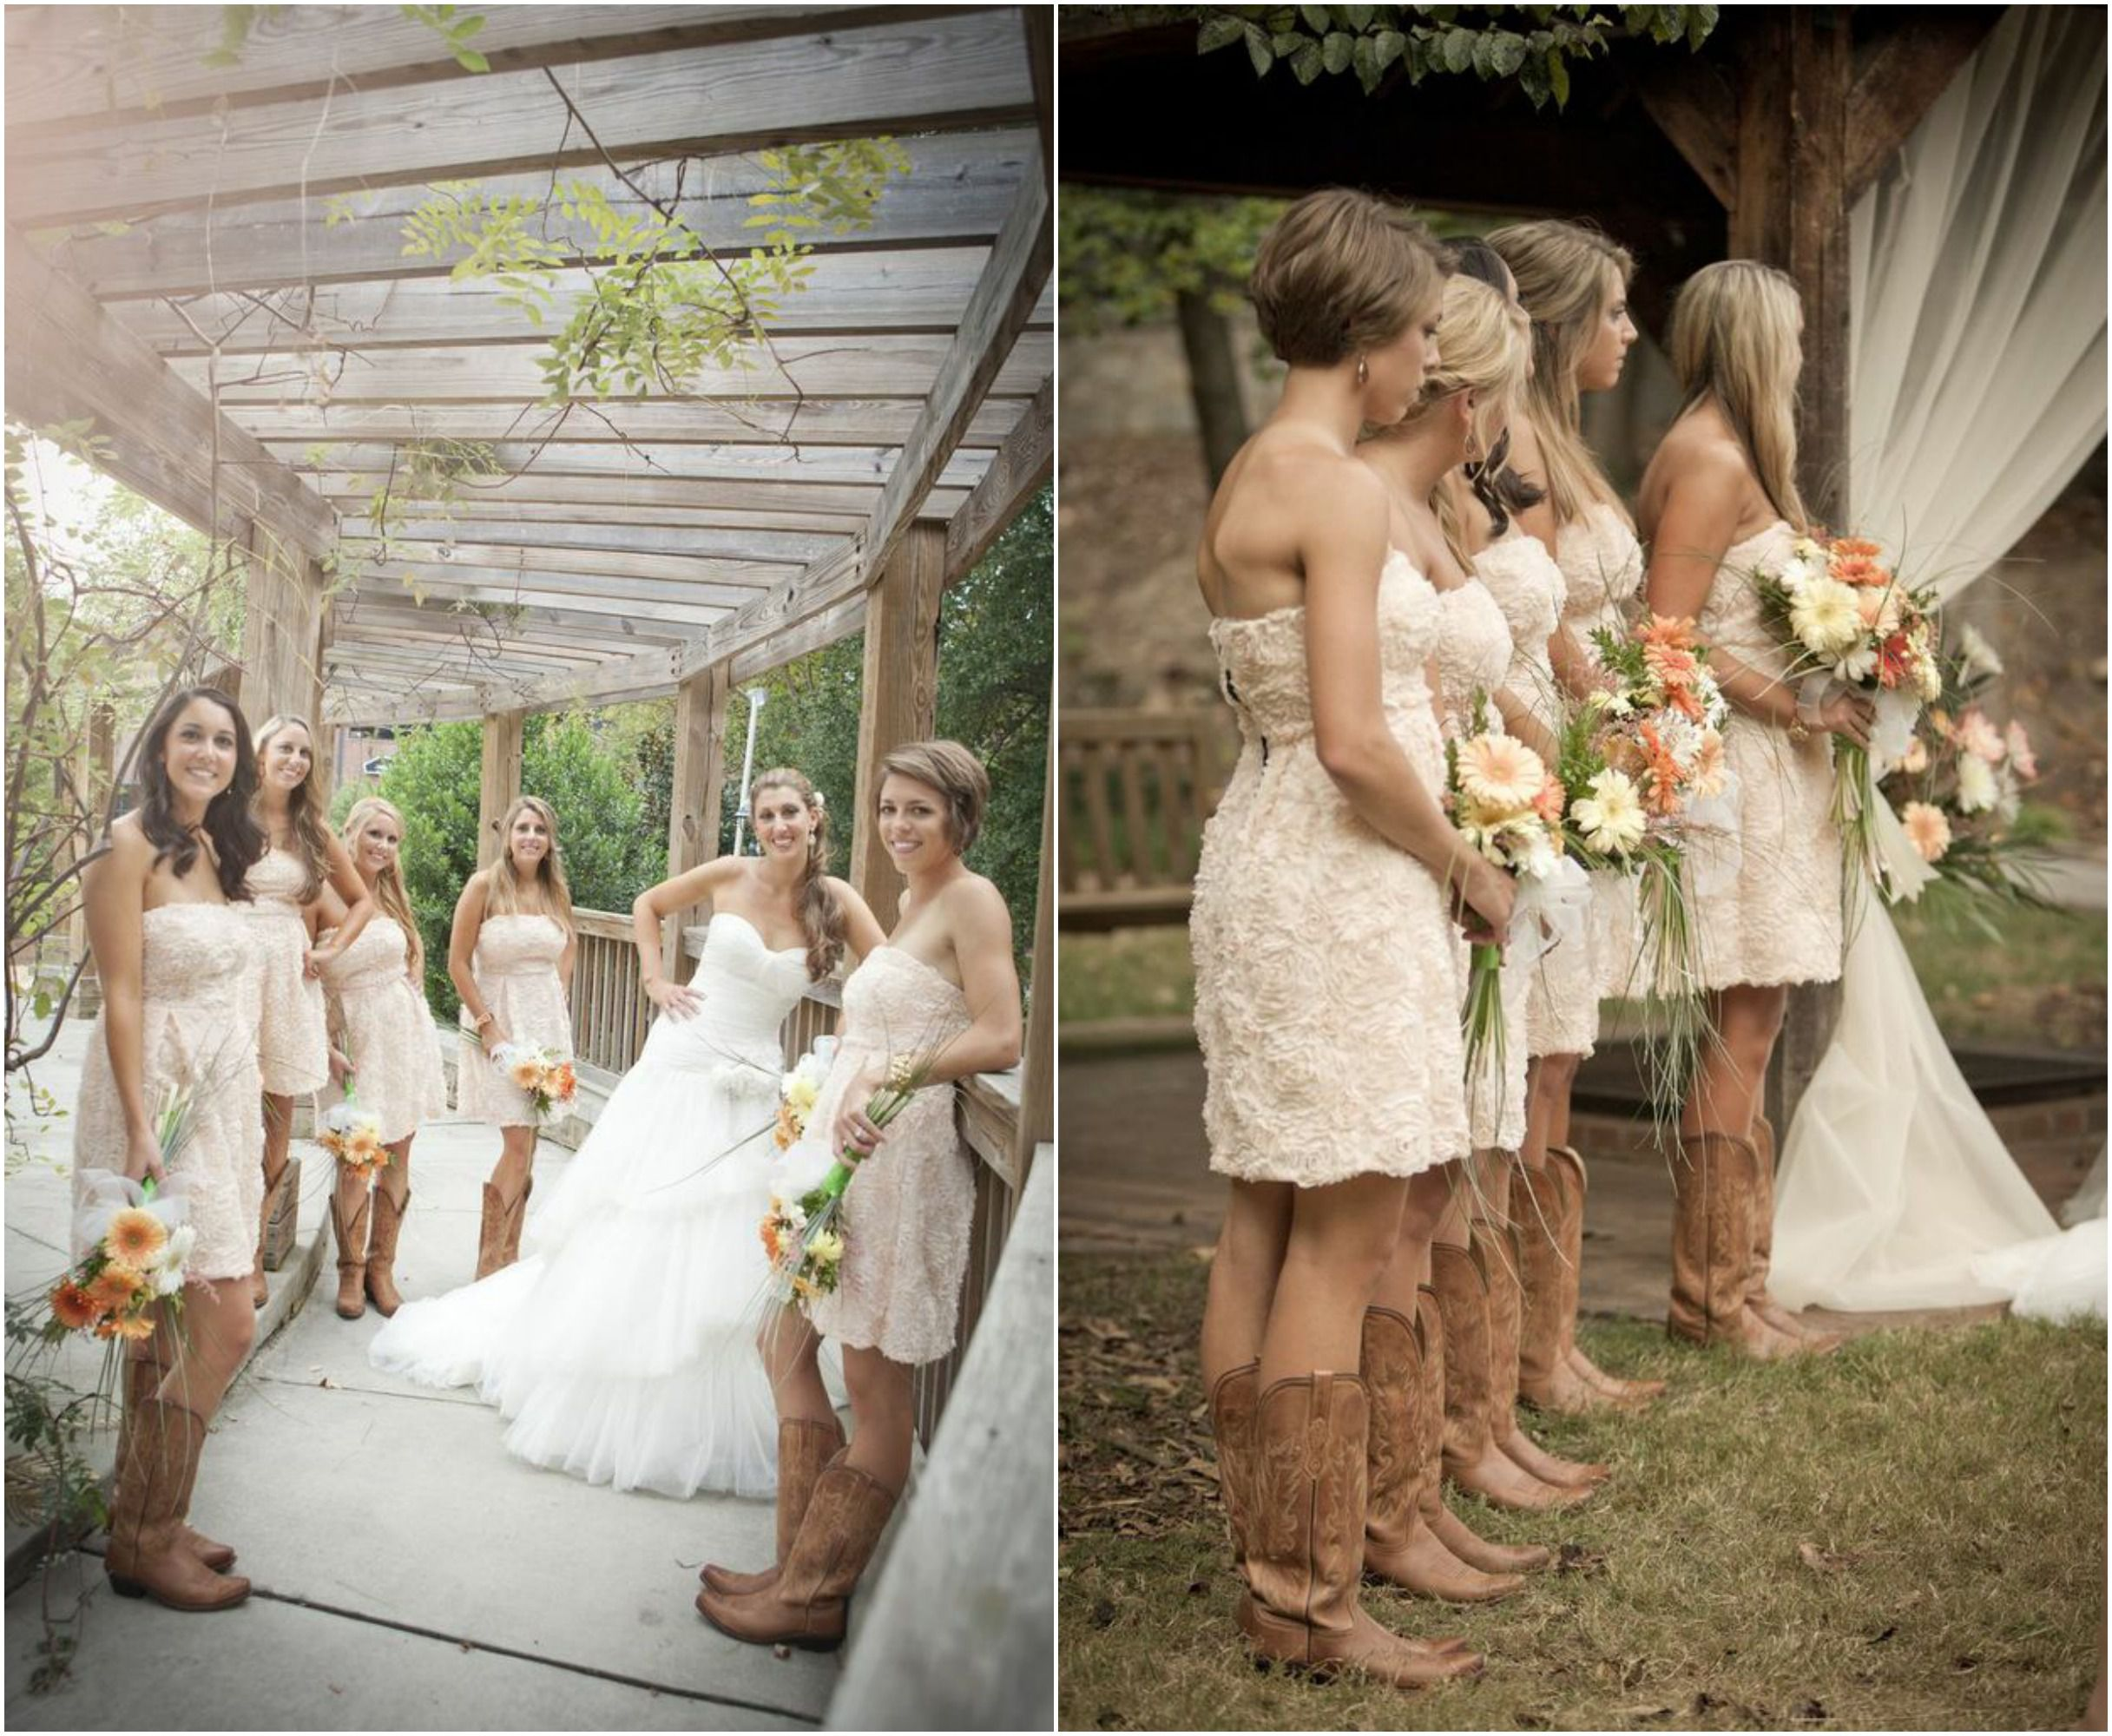 Rustic Wedding With Bridesmaids In Cowboy Boots - Rustic ... - photo#48